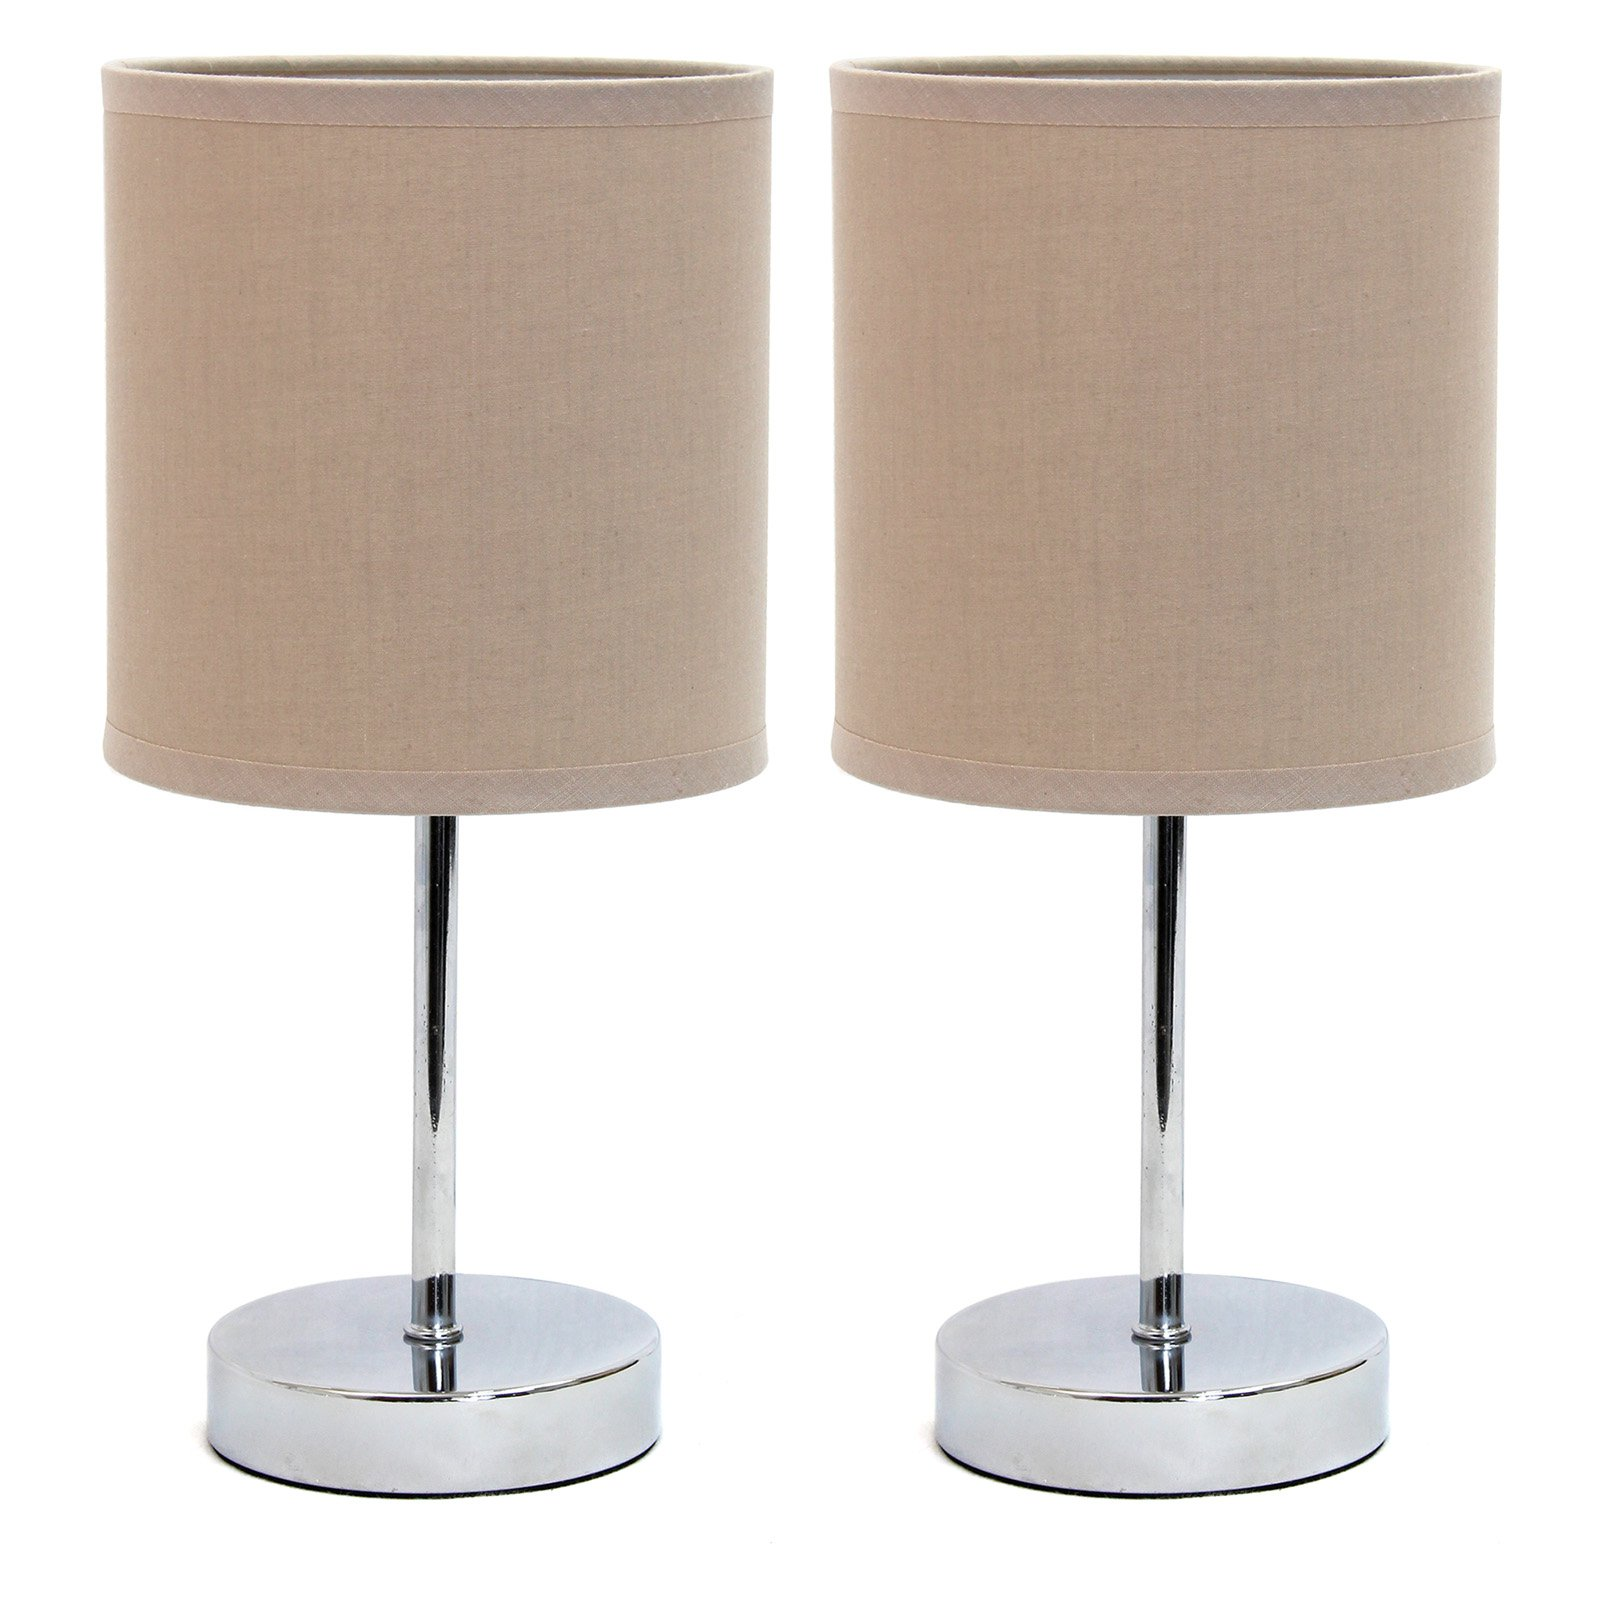 Simple Designs Chrome Mini Basic Table Lamp with Fabric Shade 2 Pack Set by All the Rages Inc